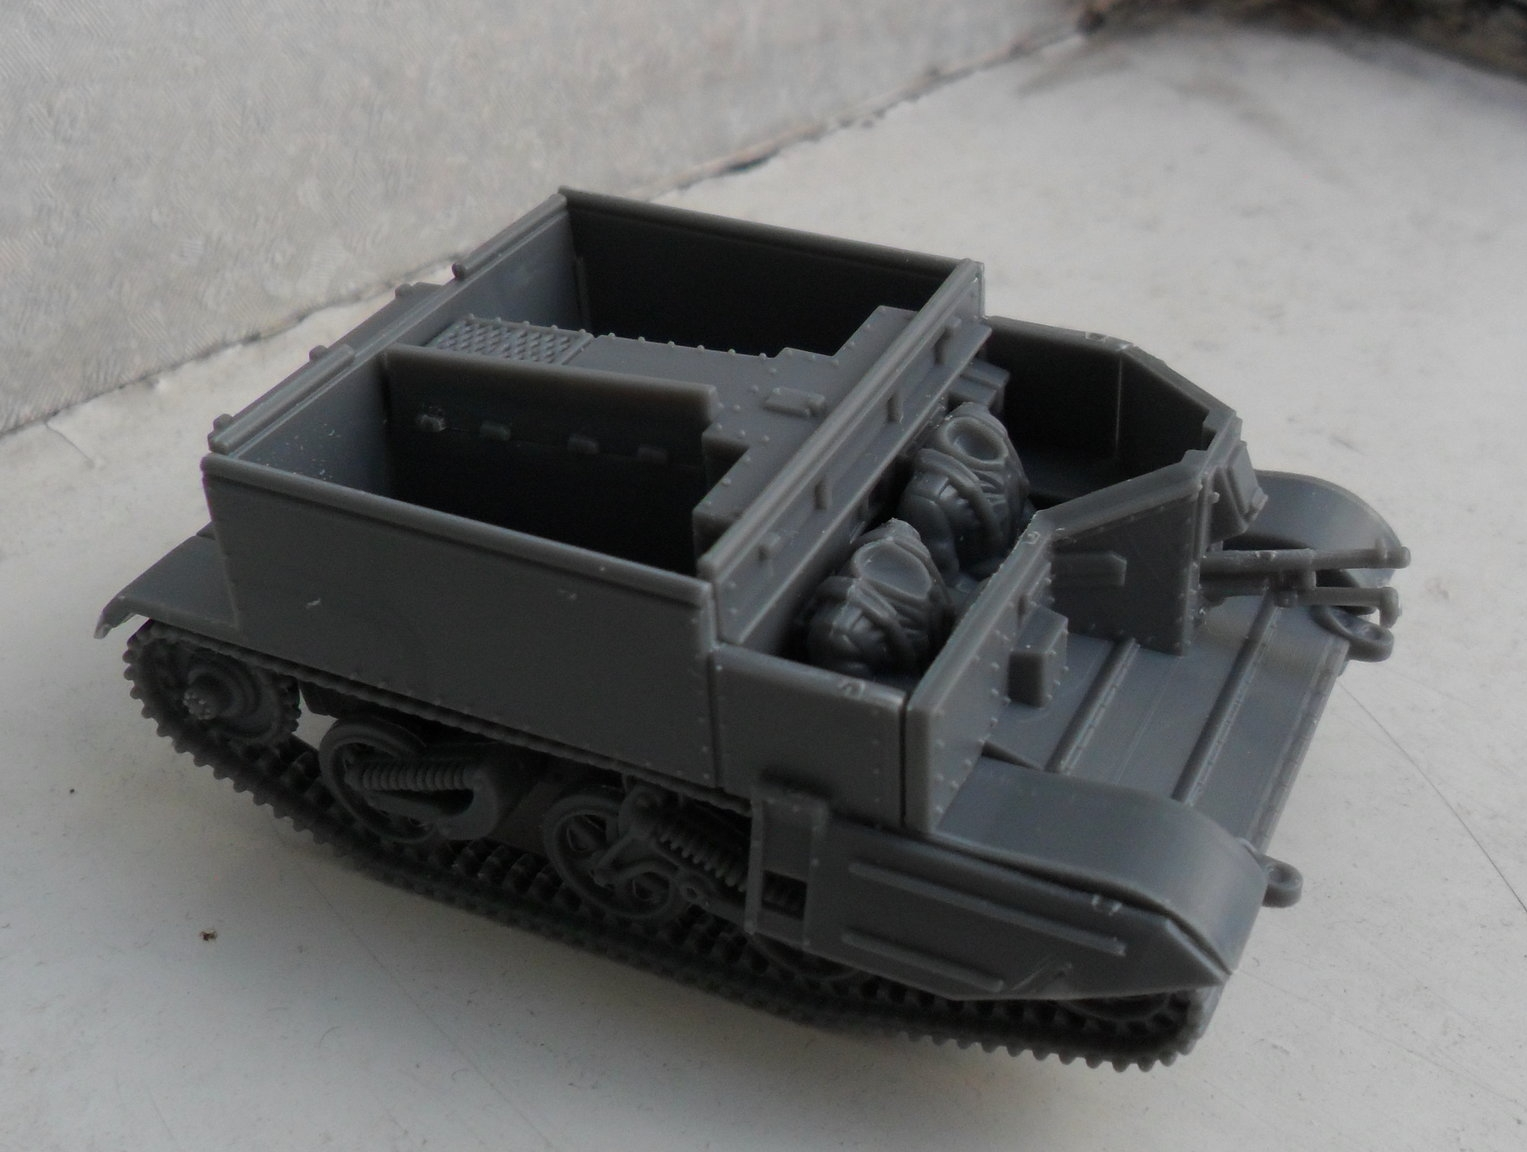 A Universal Carrier, minus all the gubbinz just waiting to be piled on.